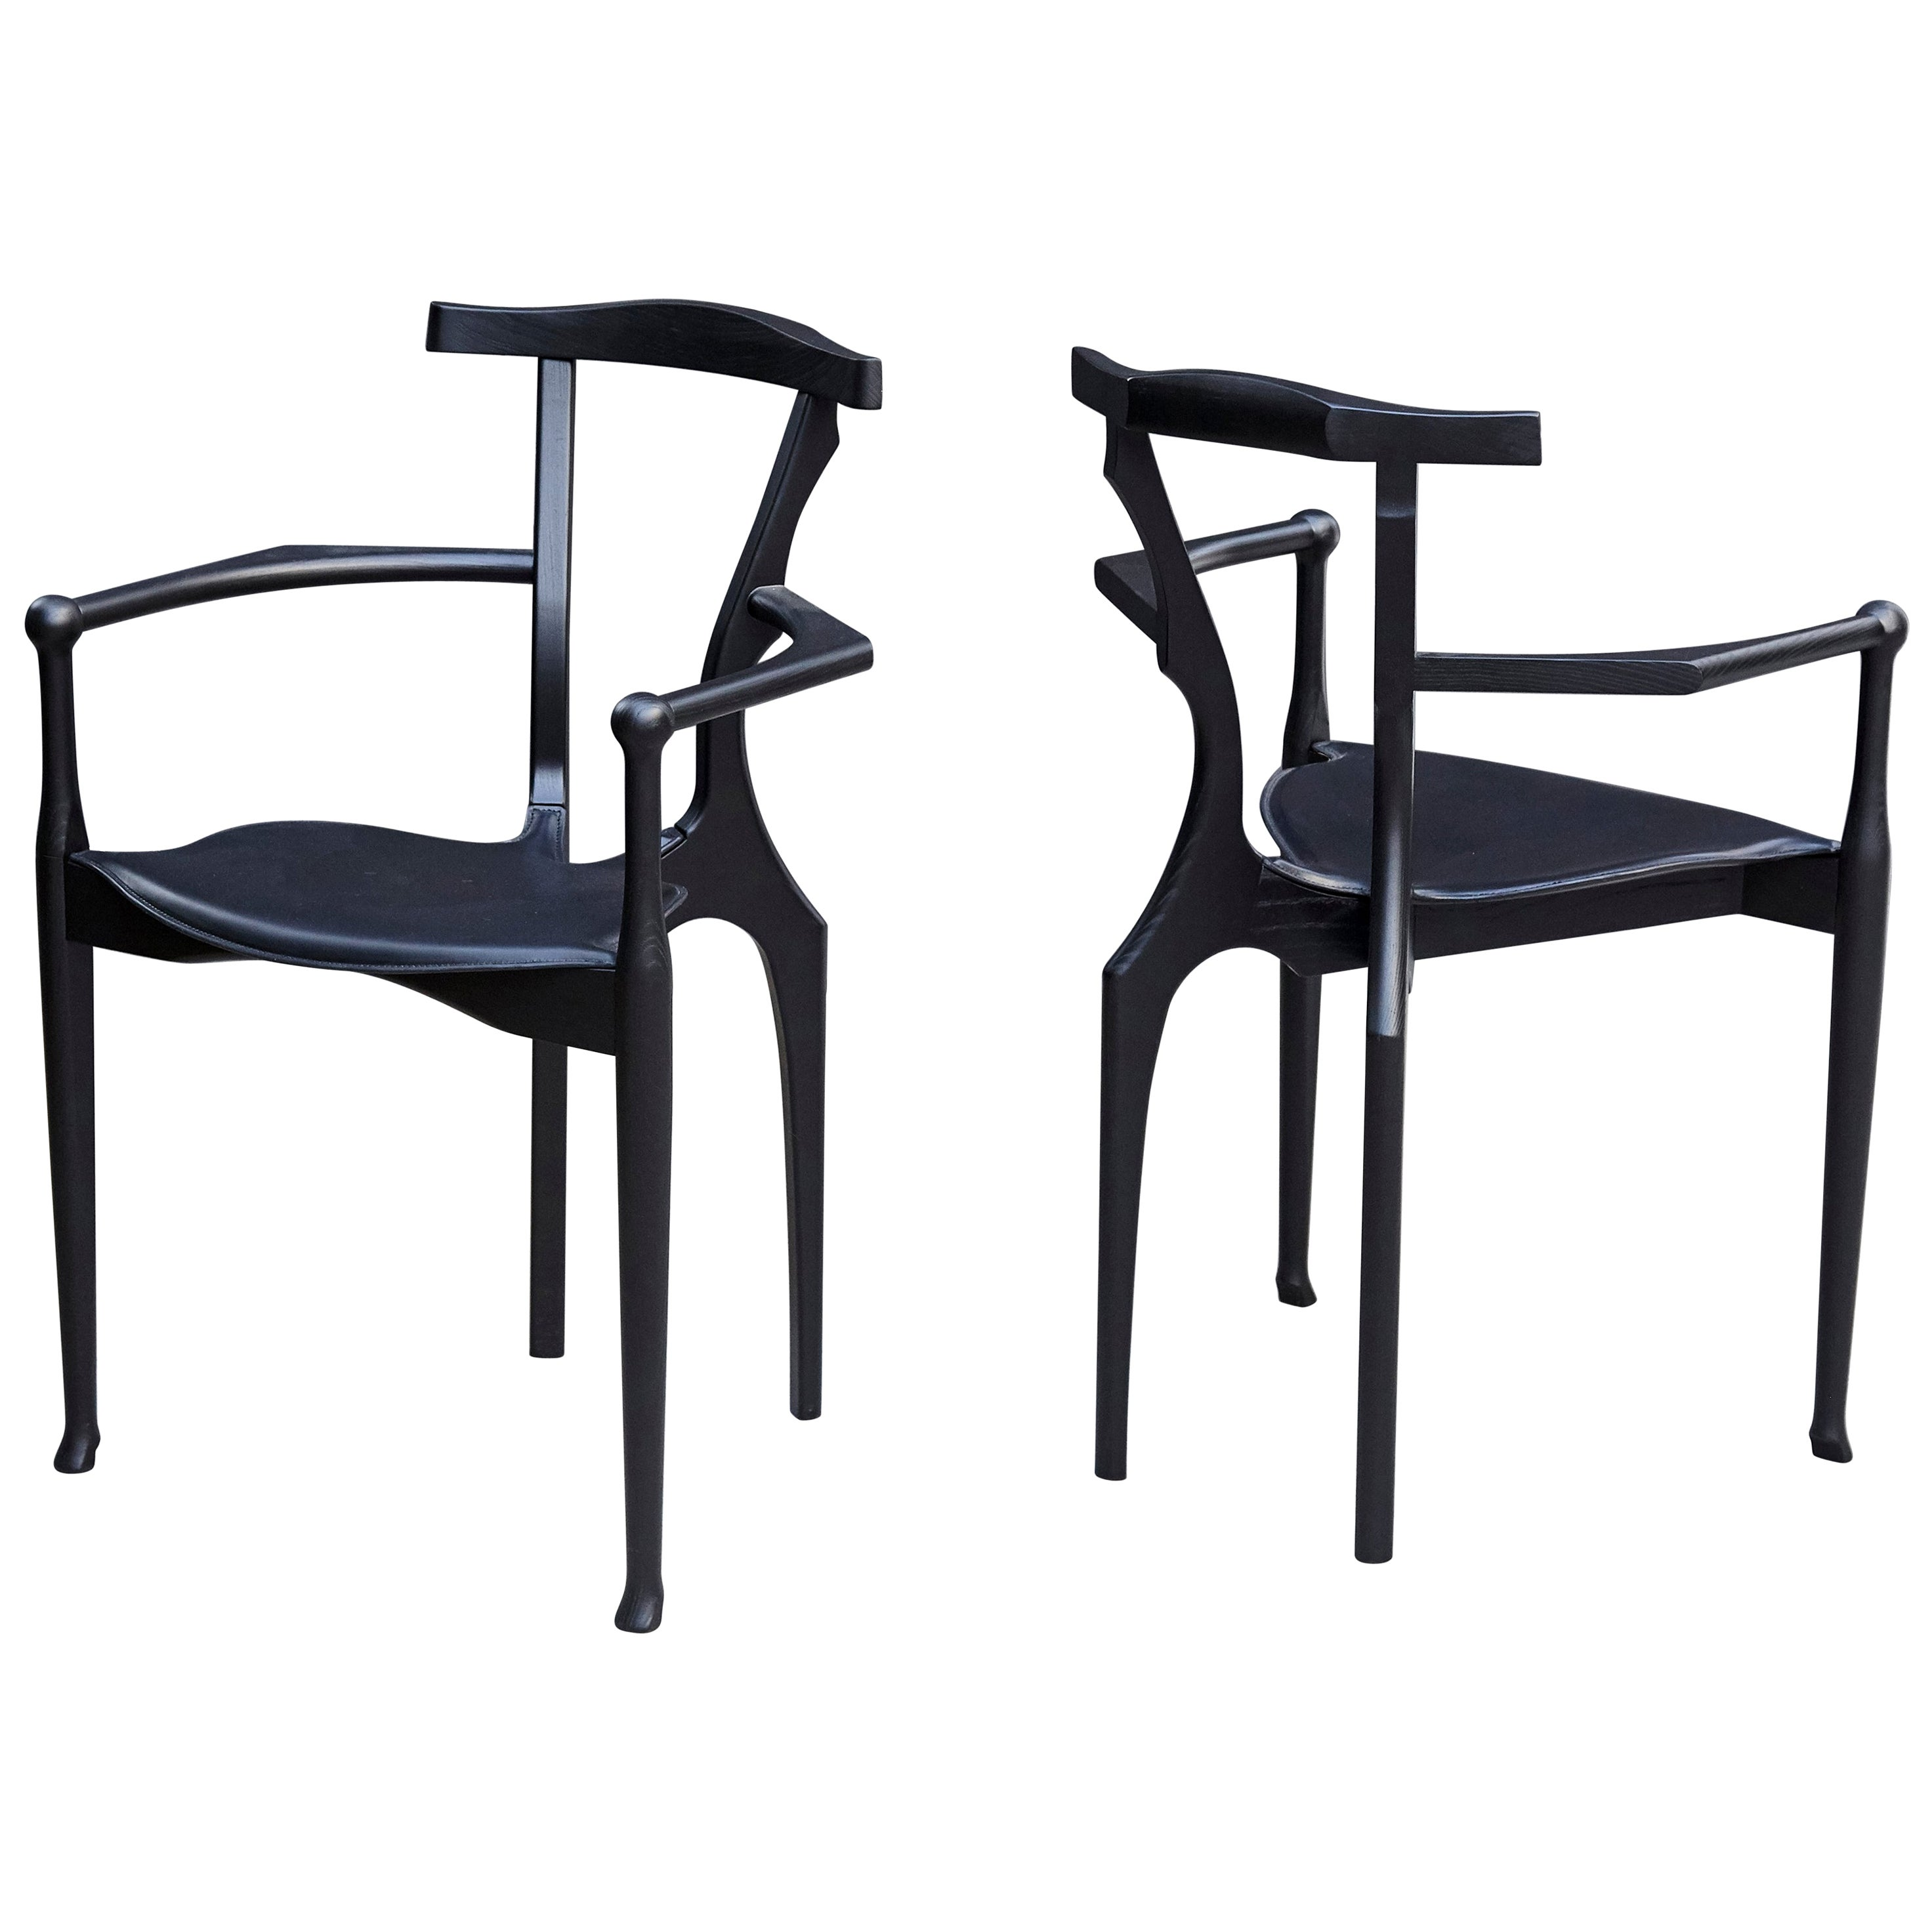 Pair of 2 Oscar Tusquets Gaulino Black Wood Leather Chairs by BD Barcelona